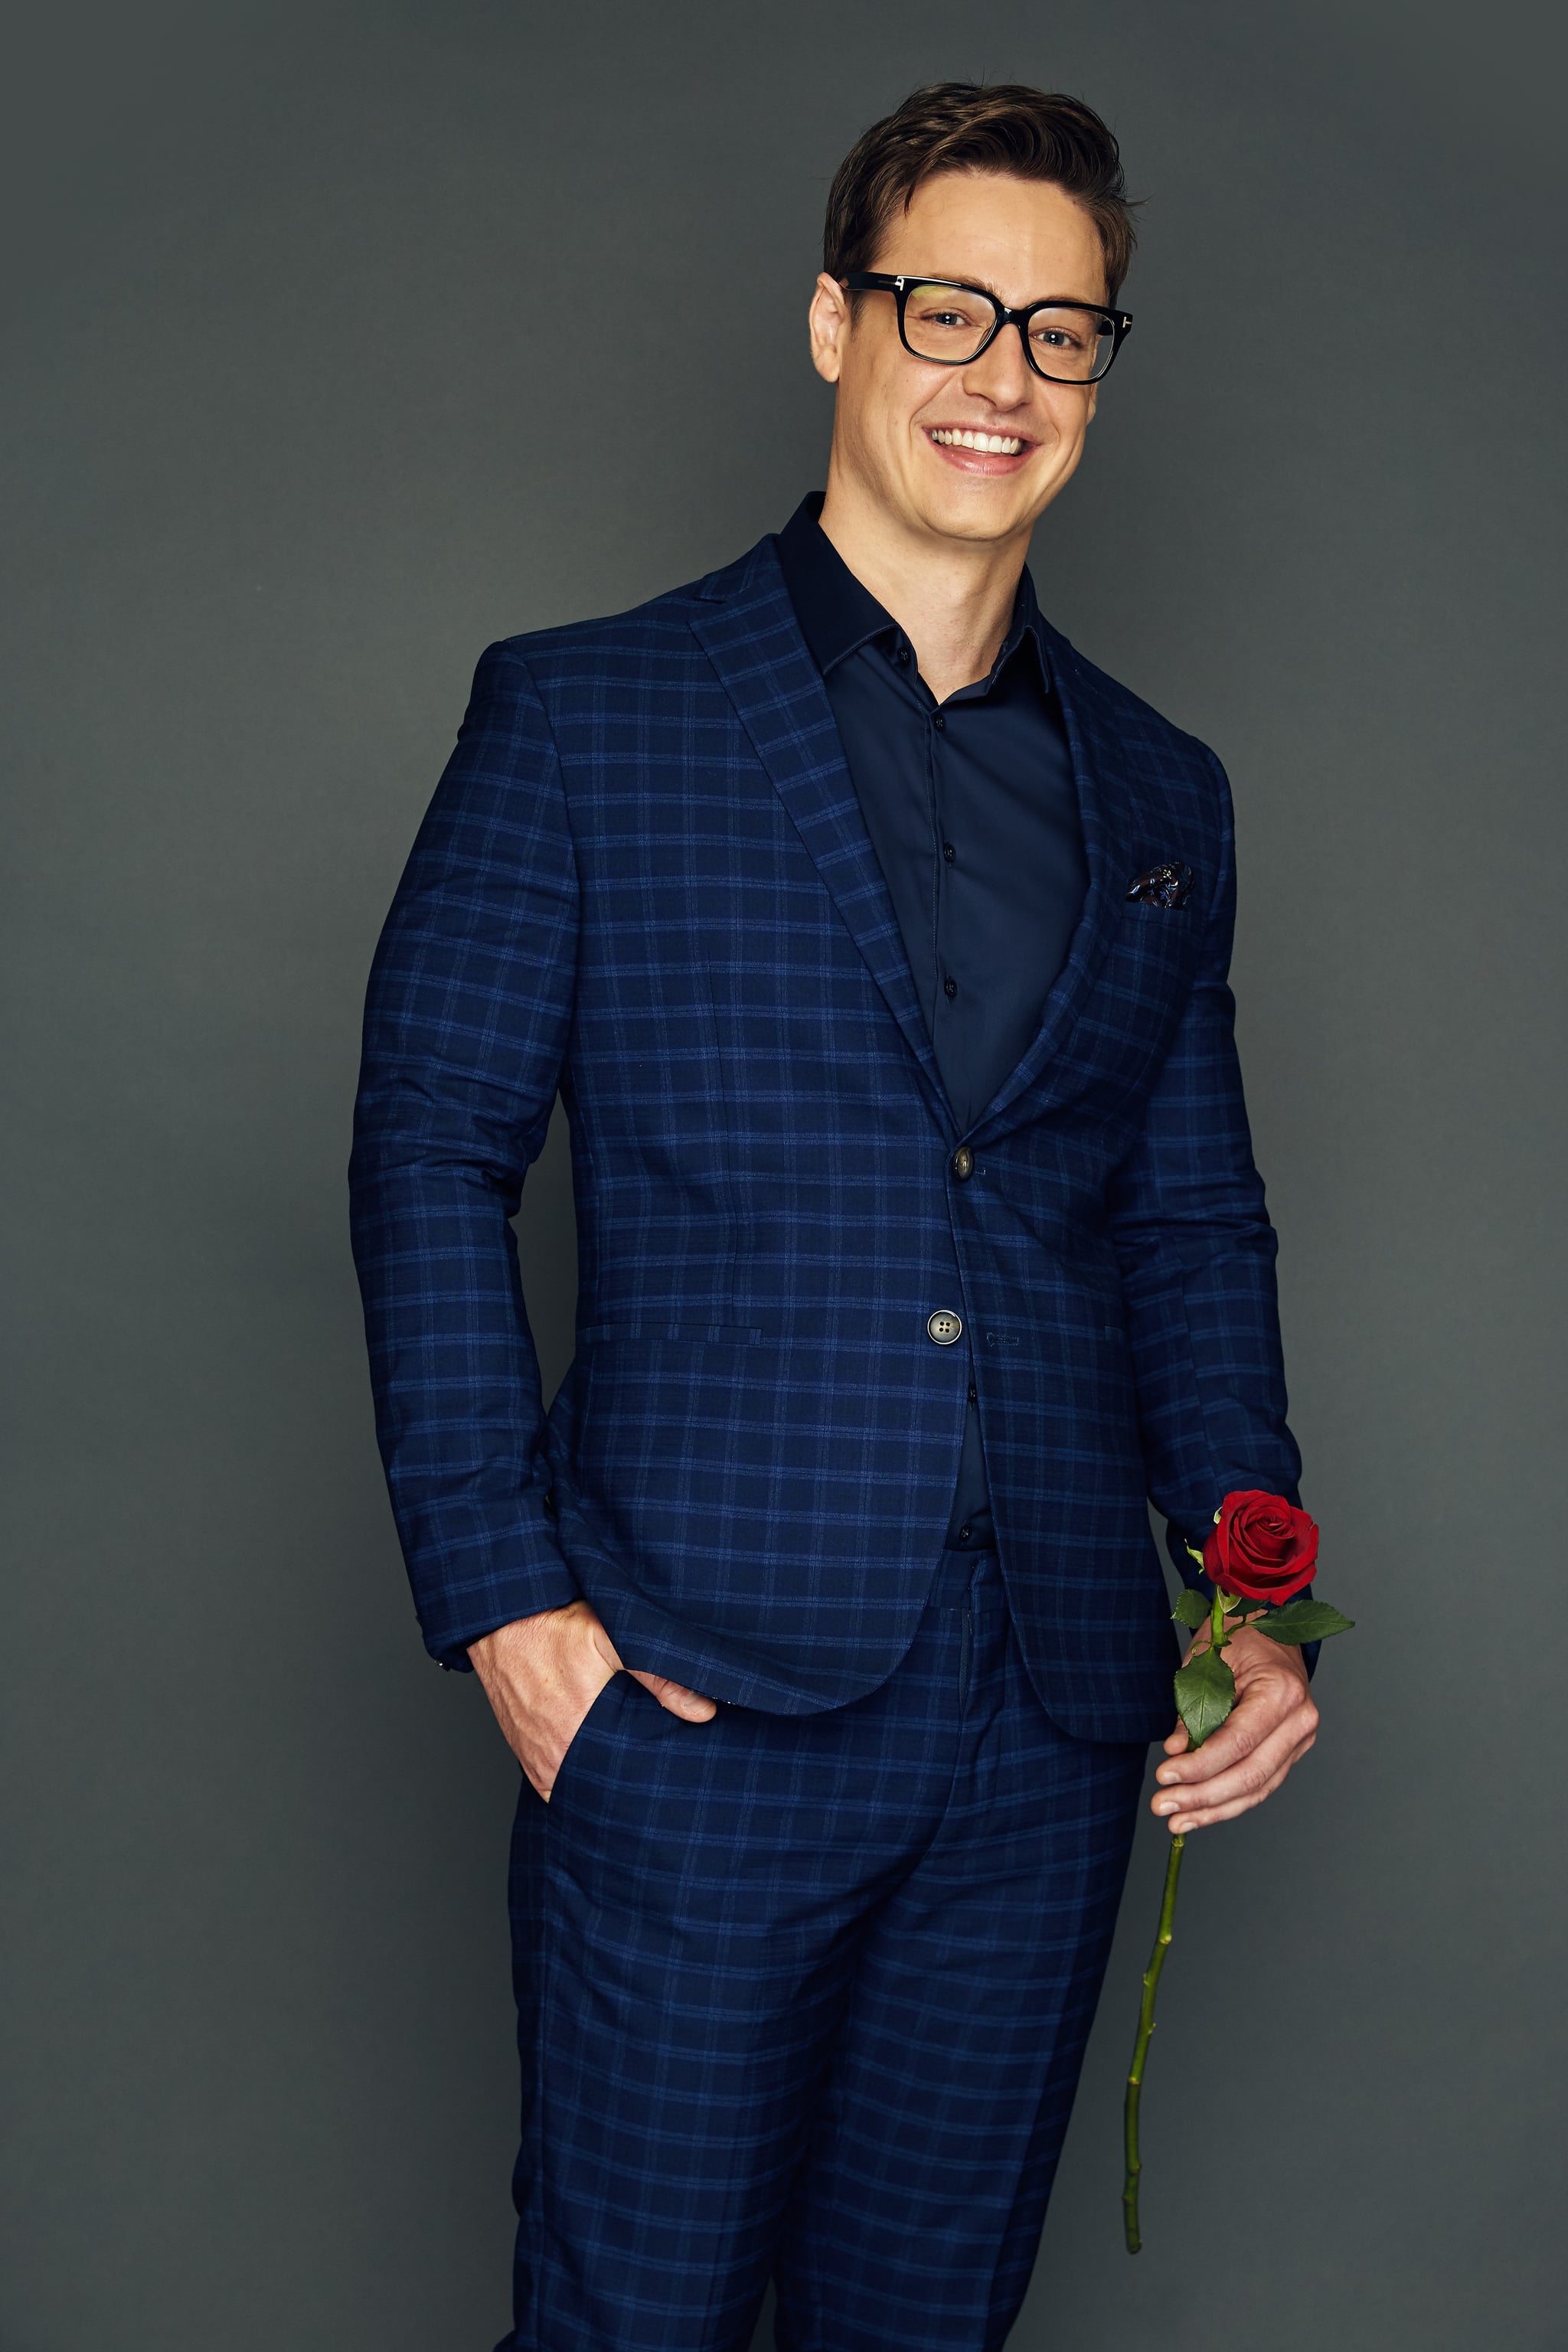 The Premiere Date For the New Season of The Bachelor Has Finally Been Revealed